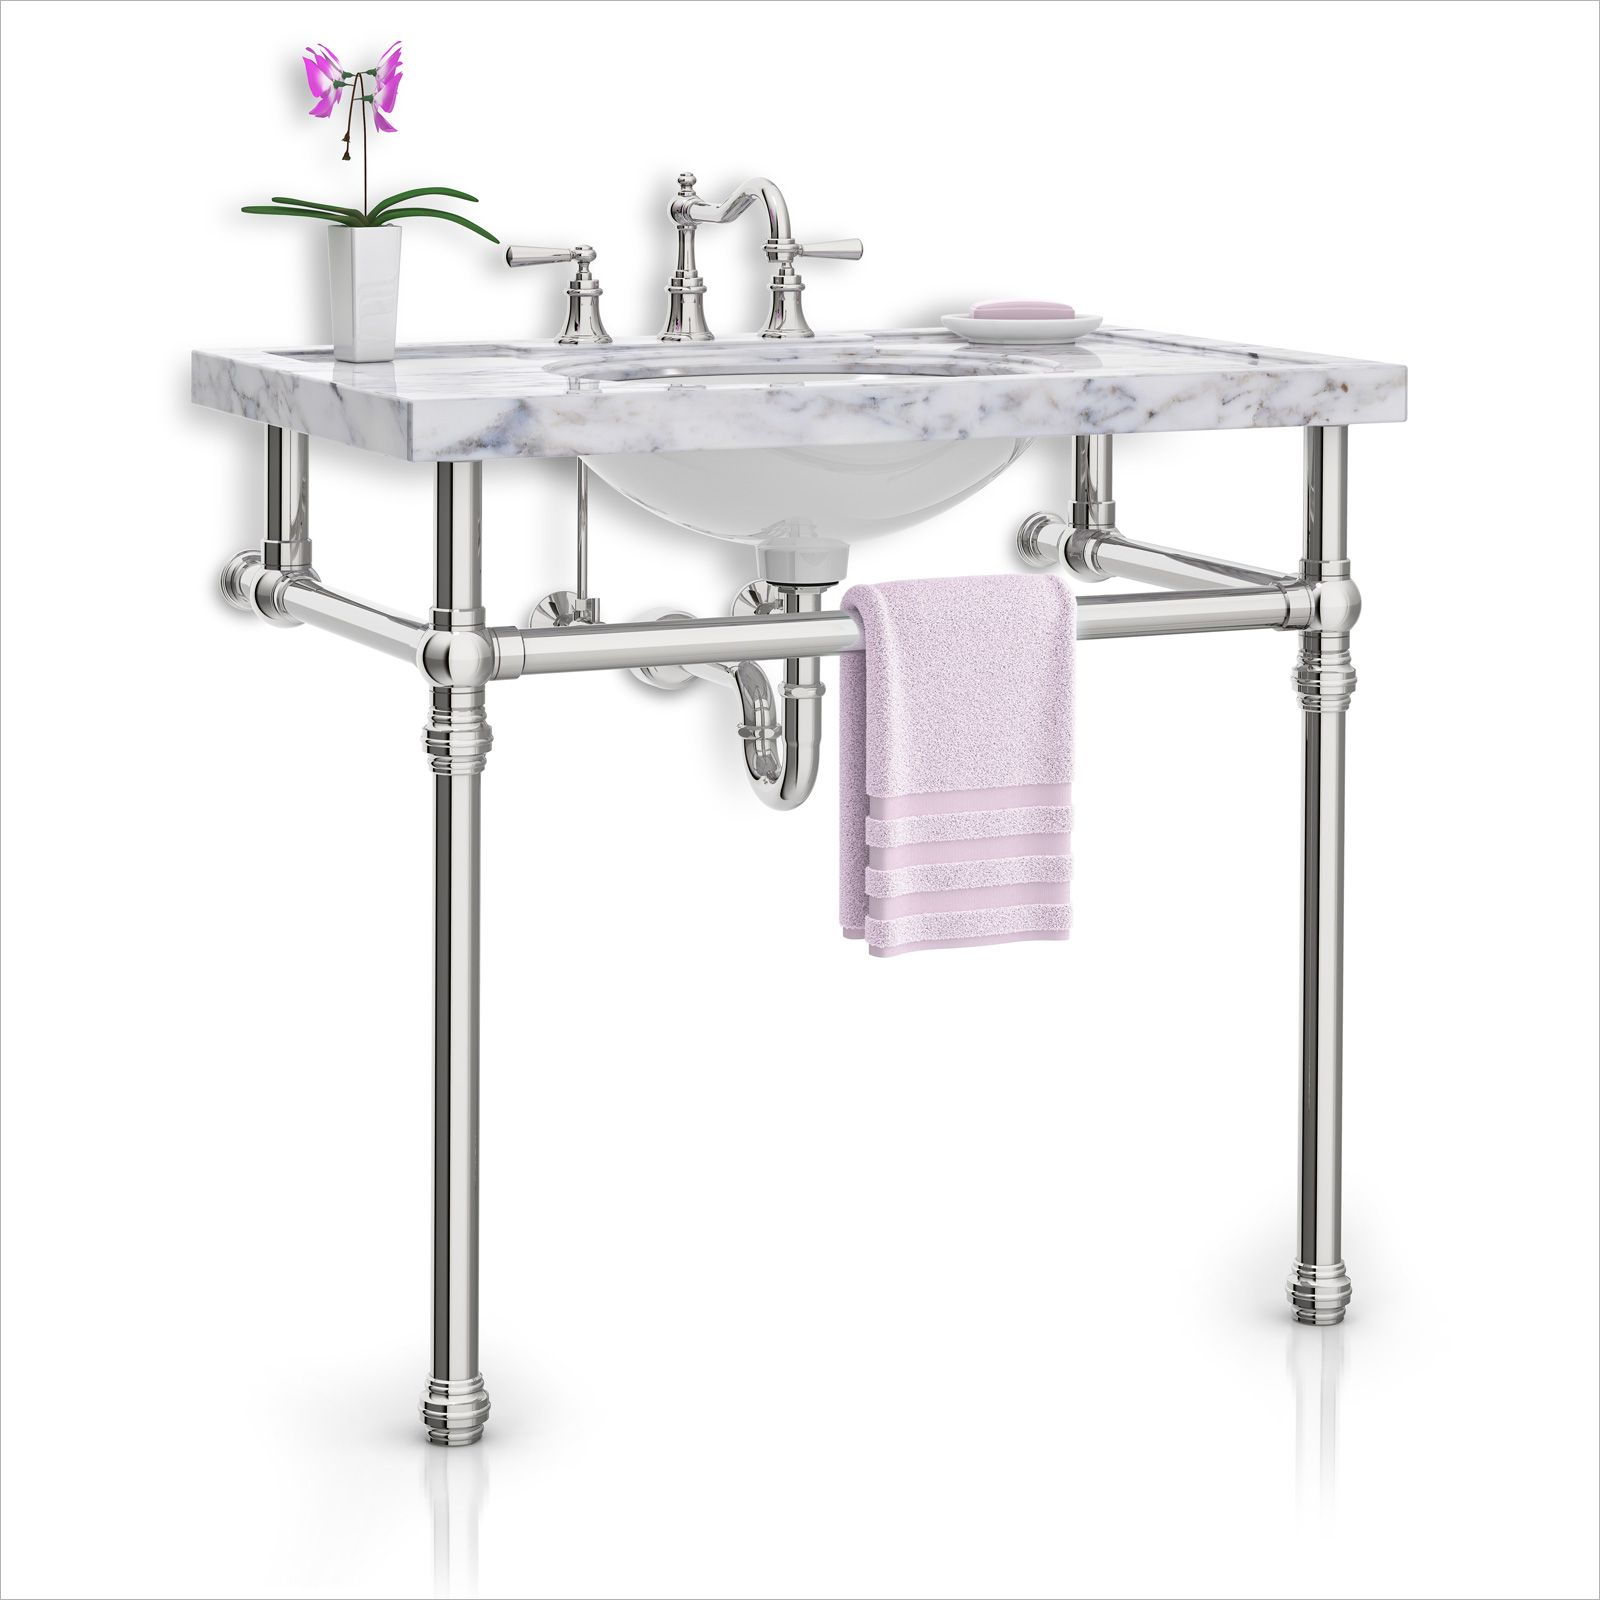 Gallery of Sink Leg Styles | Palmer Industries | Console ...